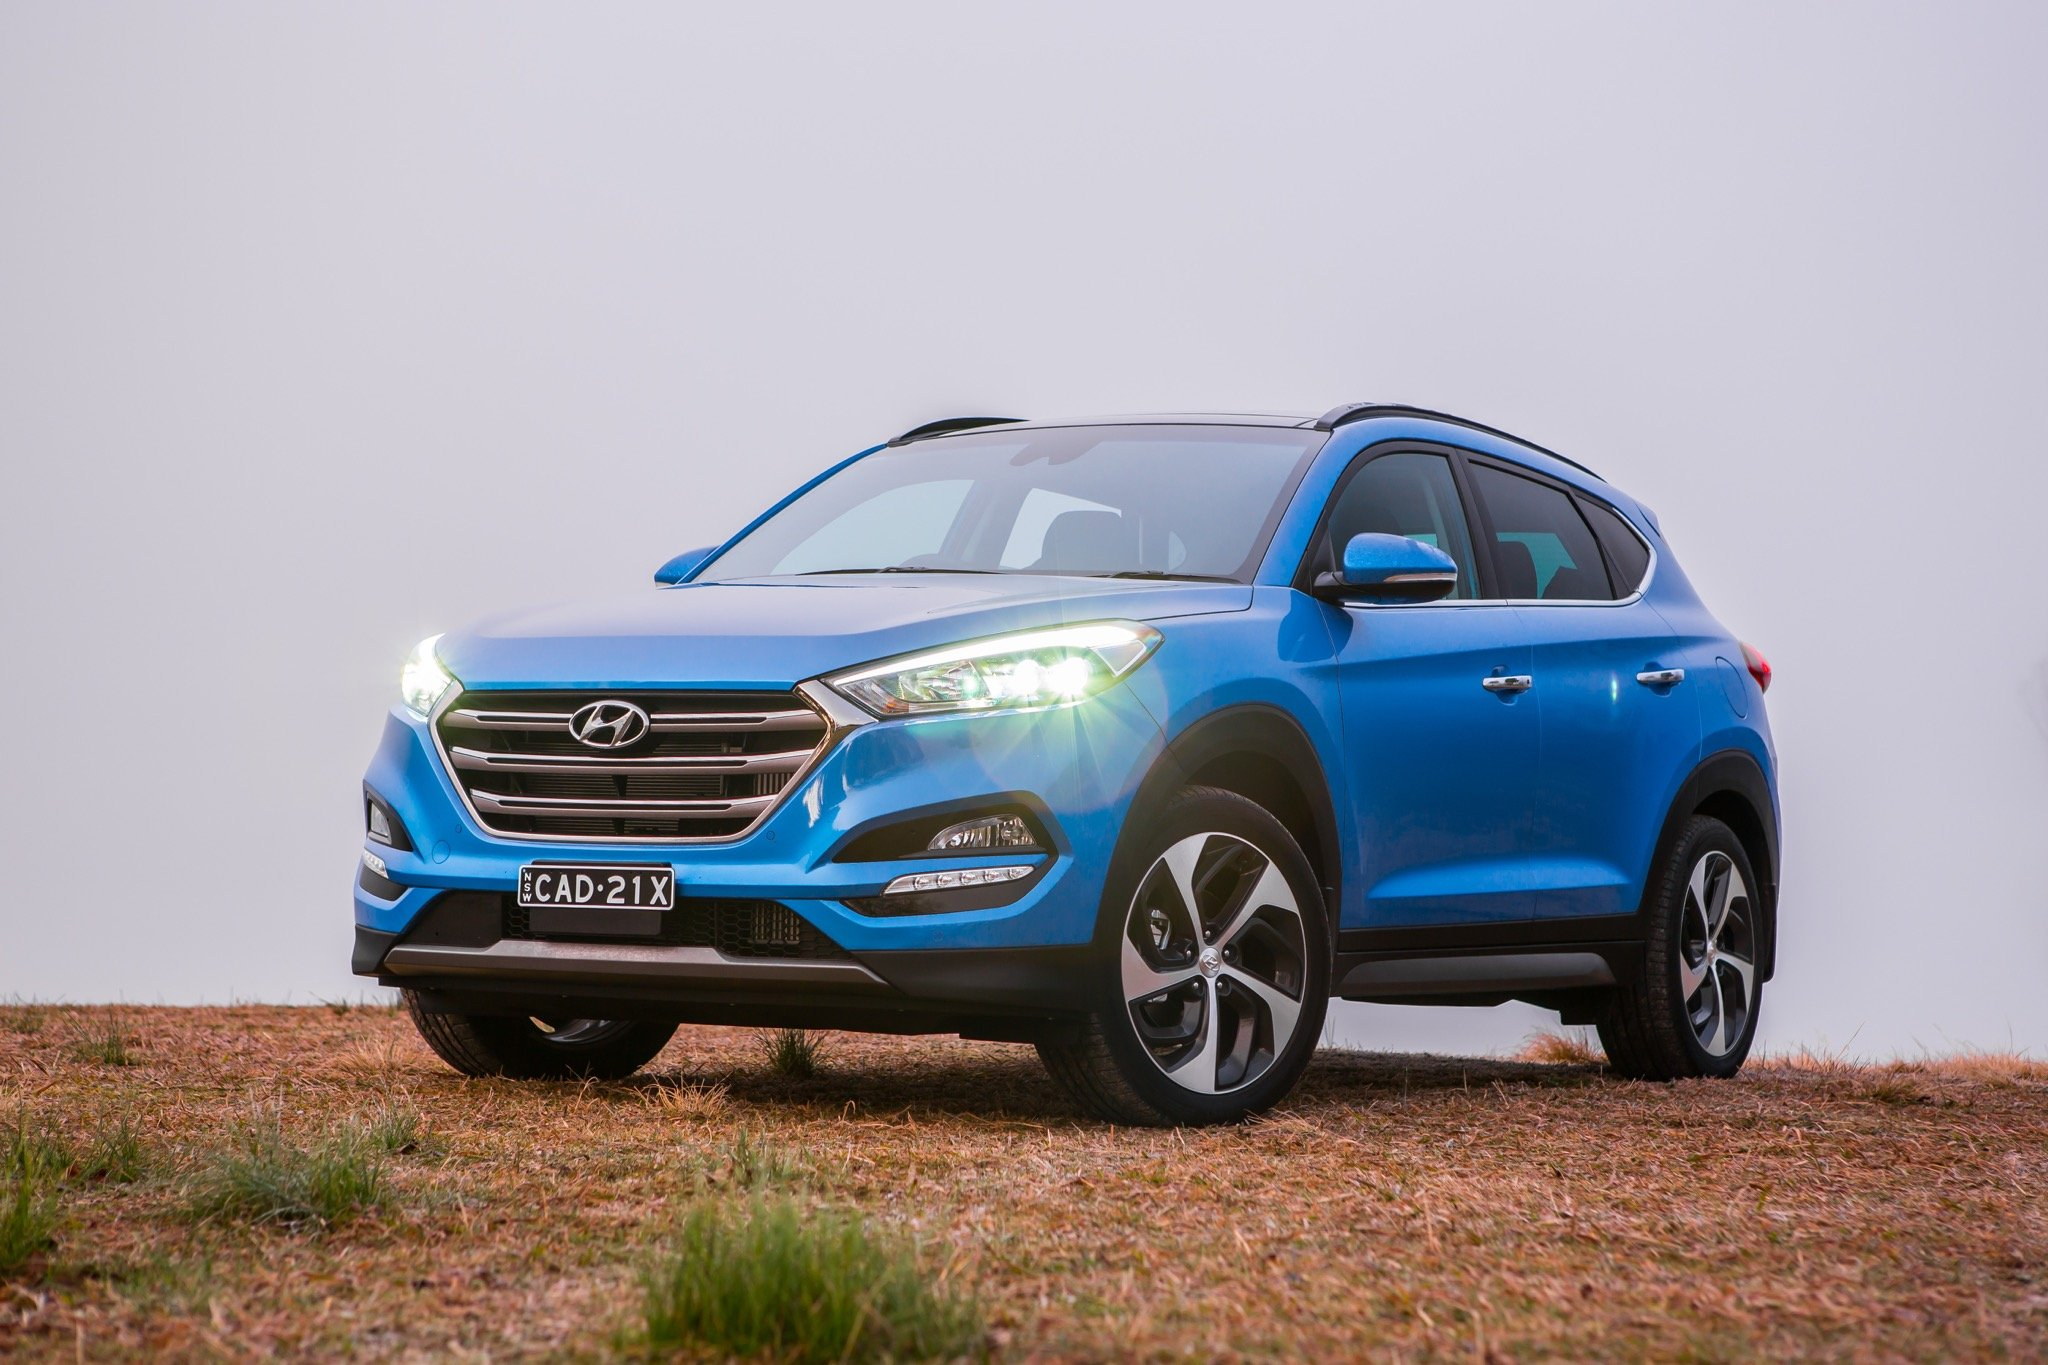 2016 Hyundai Tucson Reviews - Research Tucson Prices ... |Orange Hyundai Tucson 2016